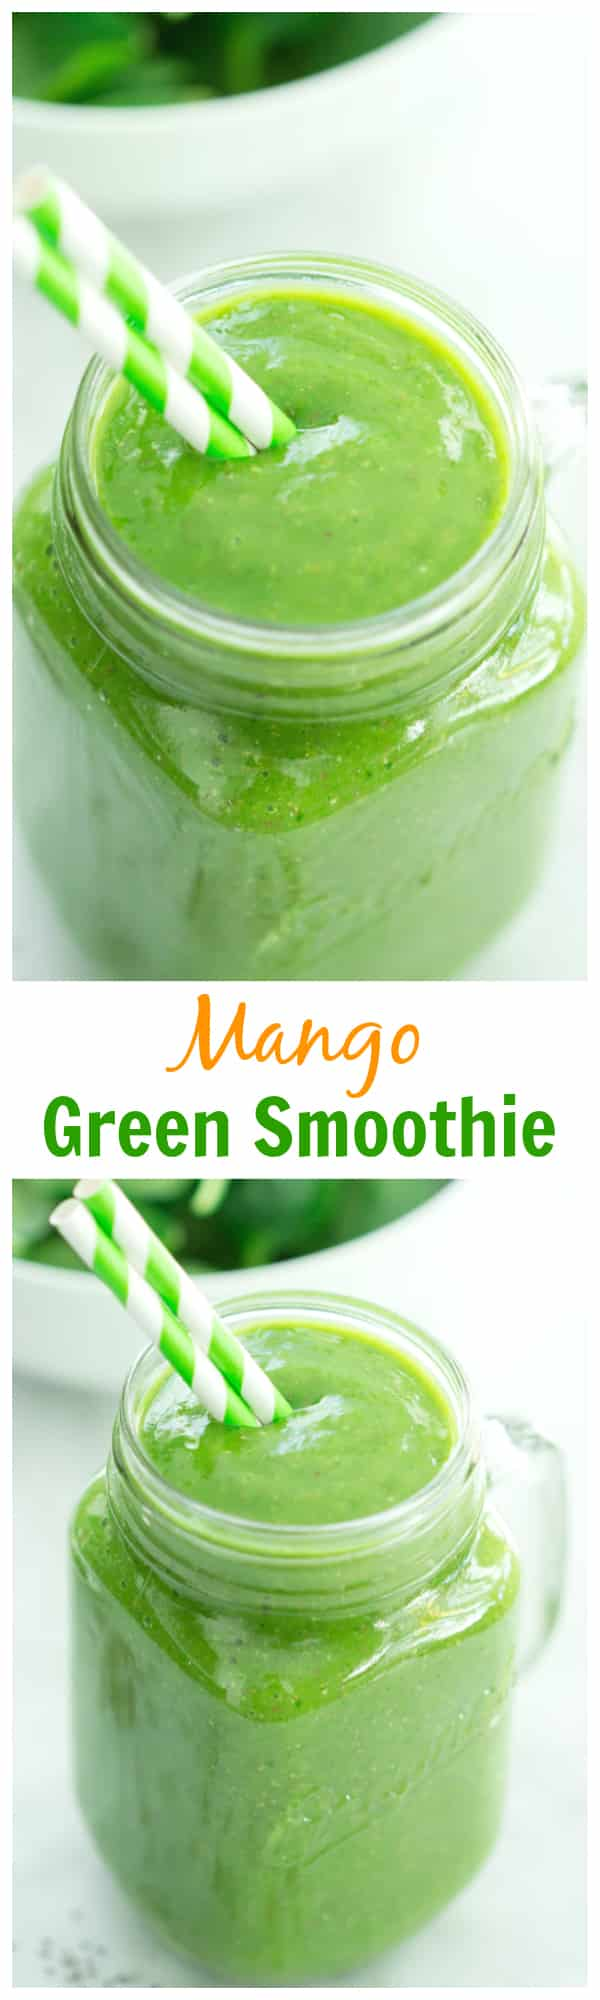 Mango Green Smoothie - This is the fastest way to get more greens in your diet. Make this delicious Mango Green Smoothie and start your day right.